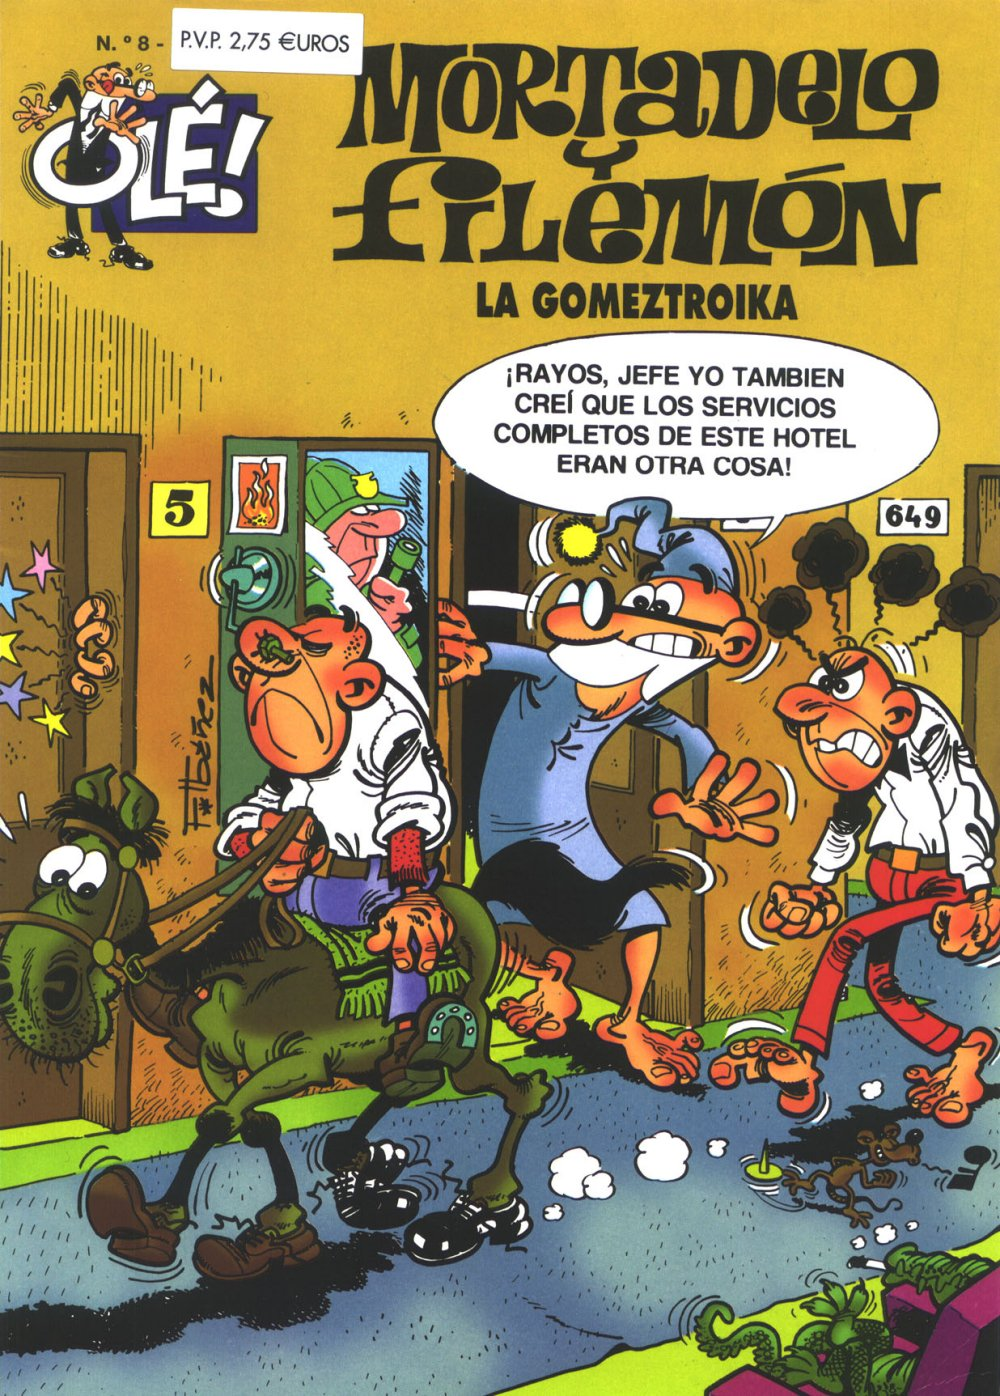 La Gomeztroika - Mortadelo y Filemón